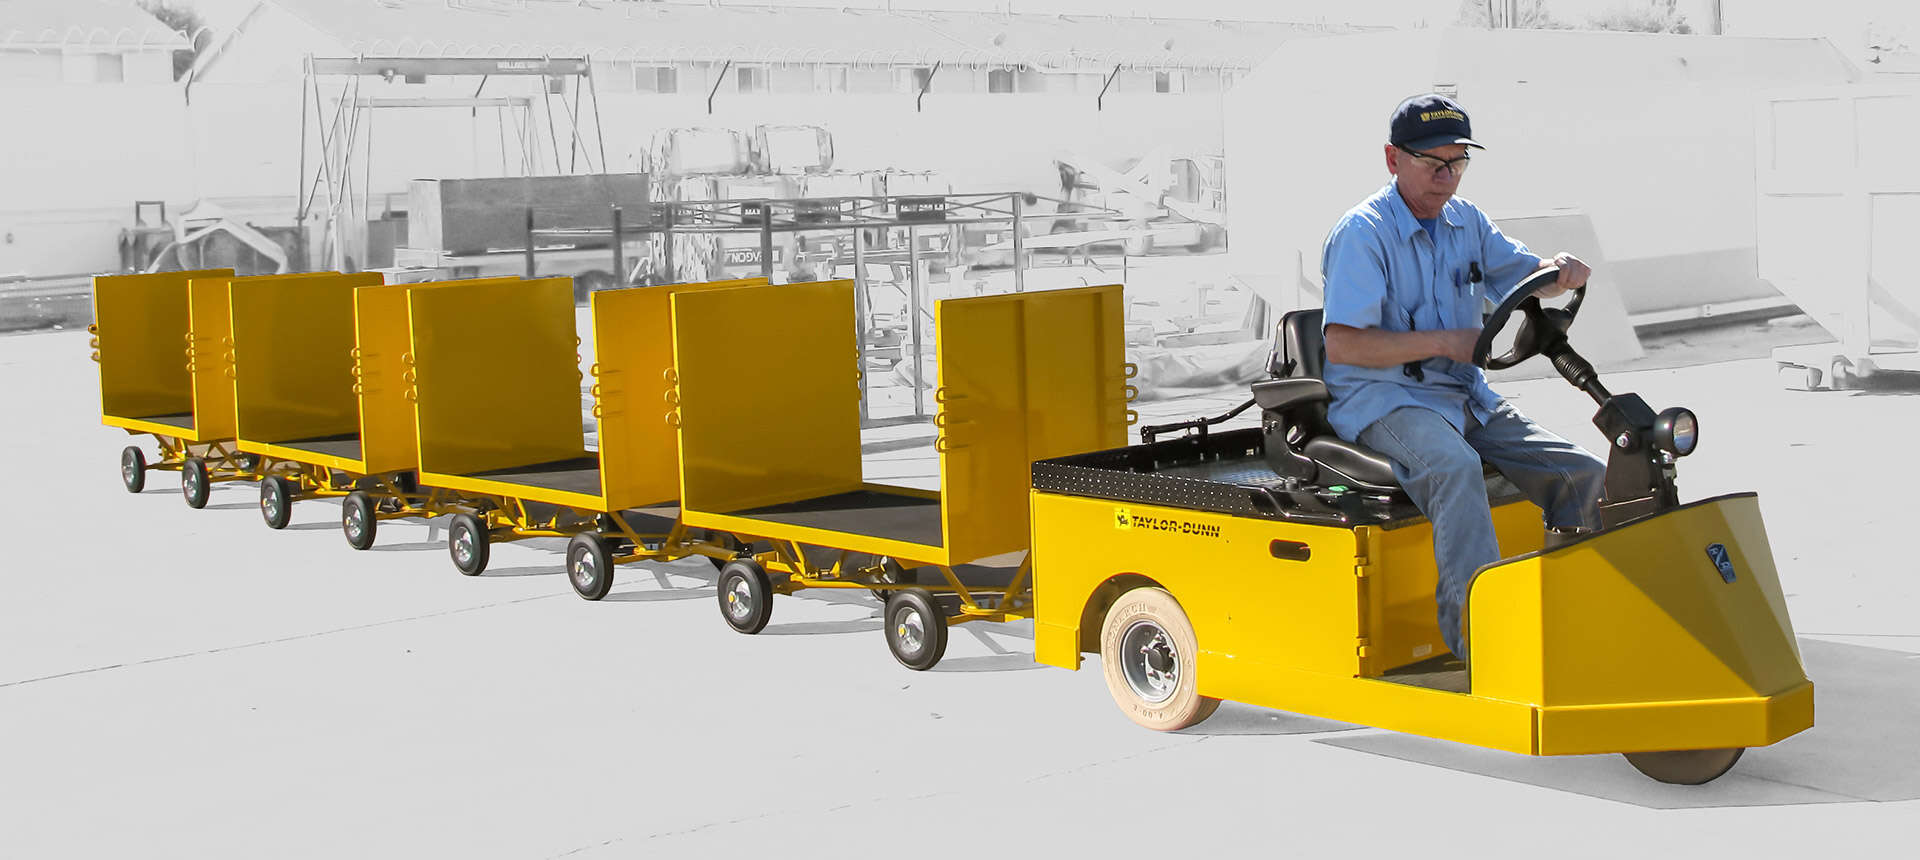 Industrial Carts Equipment Image